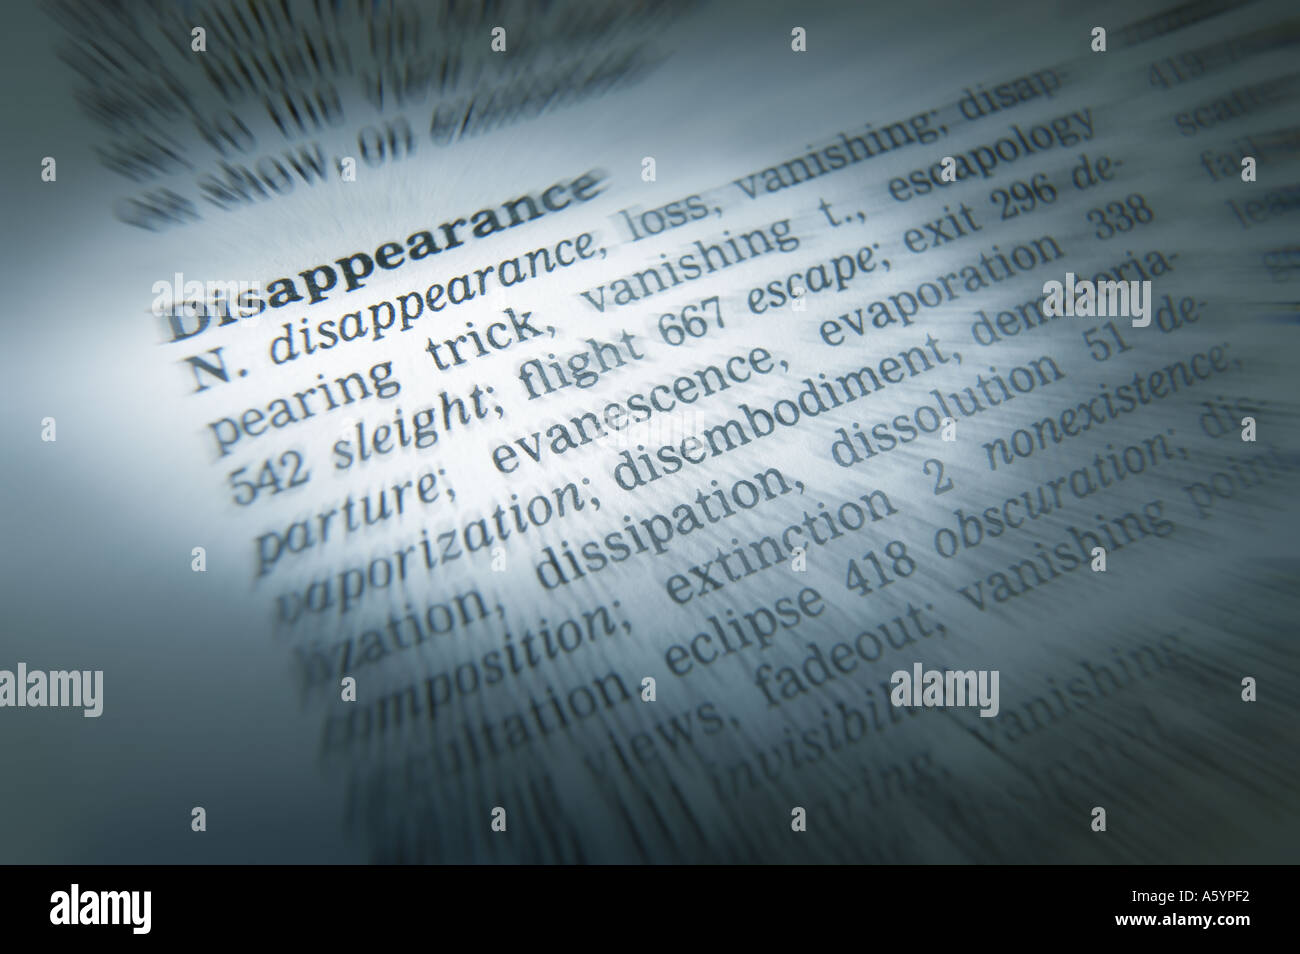 THESAURUS PAGE SHOWING DEFINITION OF WORD DISAPPEARANCE - Stock Image